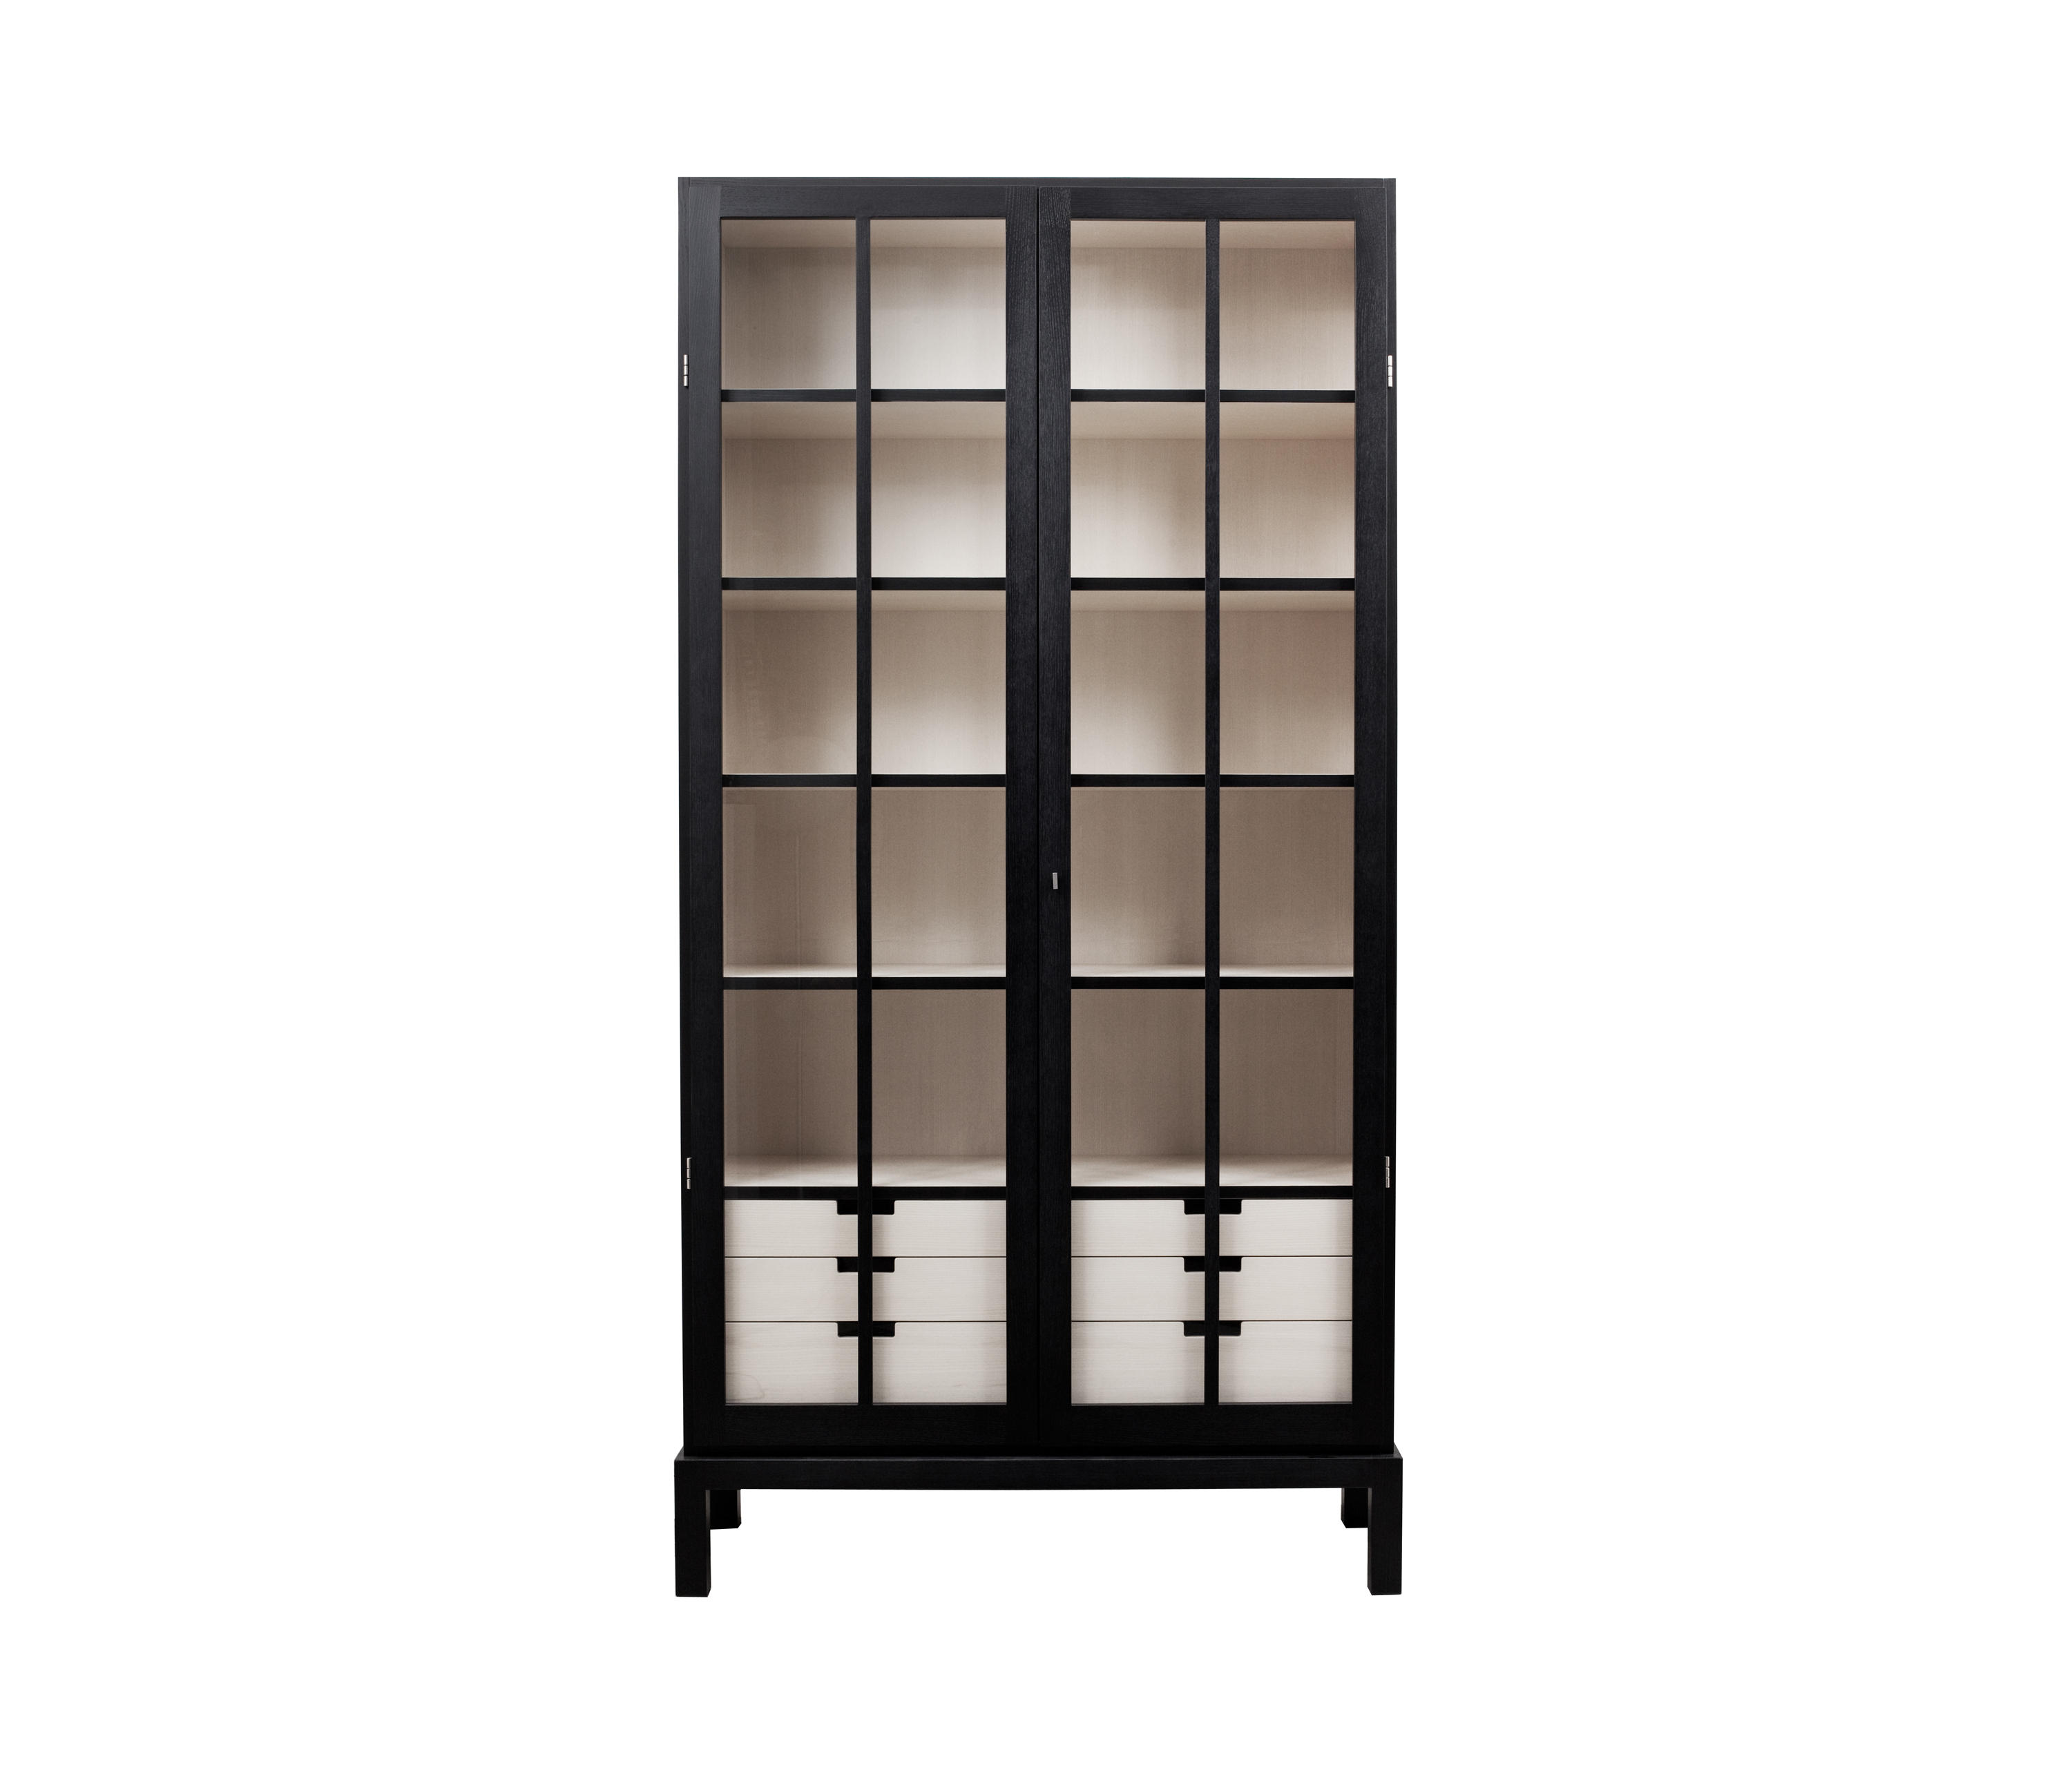 Lalla Display Cabinet By Olby Design | Display Cabinets